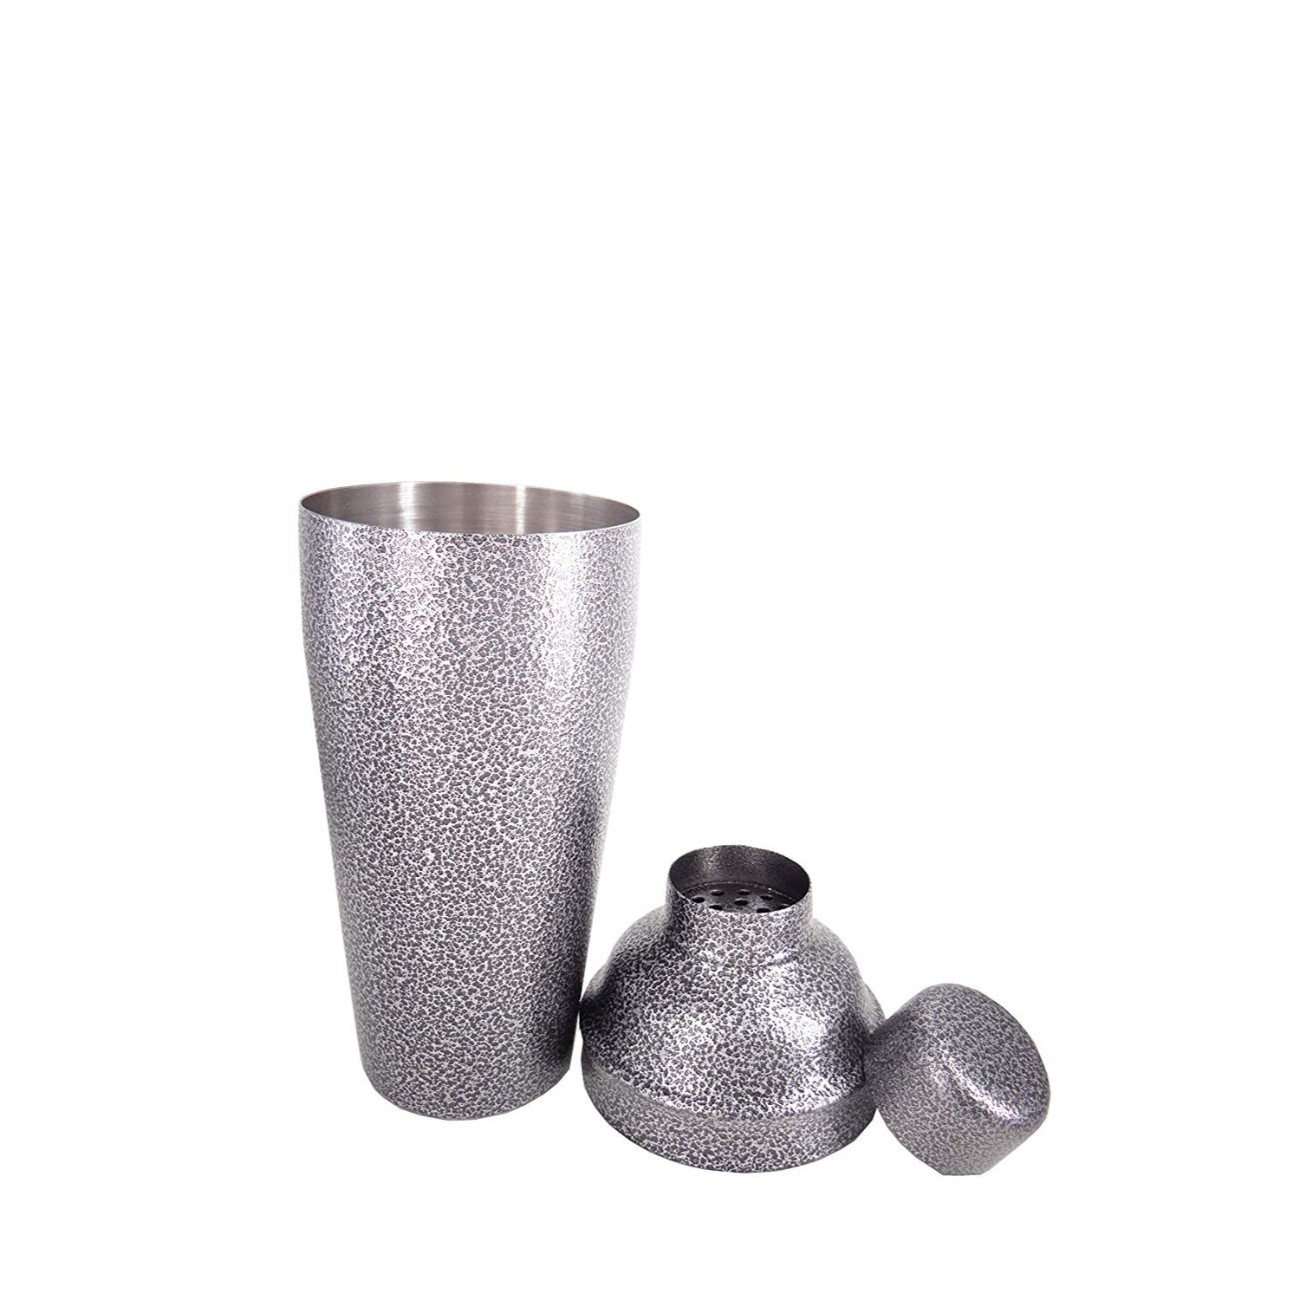 Stainless Steel Hard Anodized Cocktail Wine Shaker 750 ML